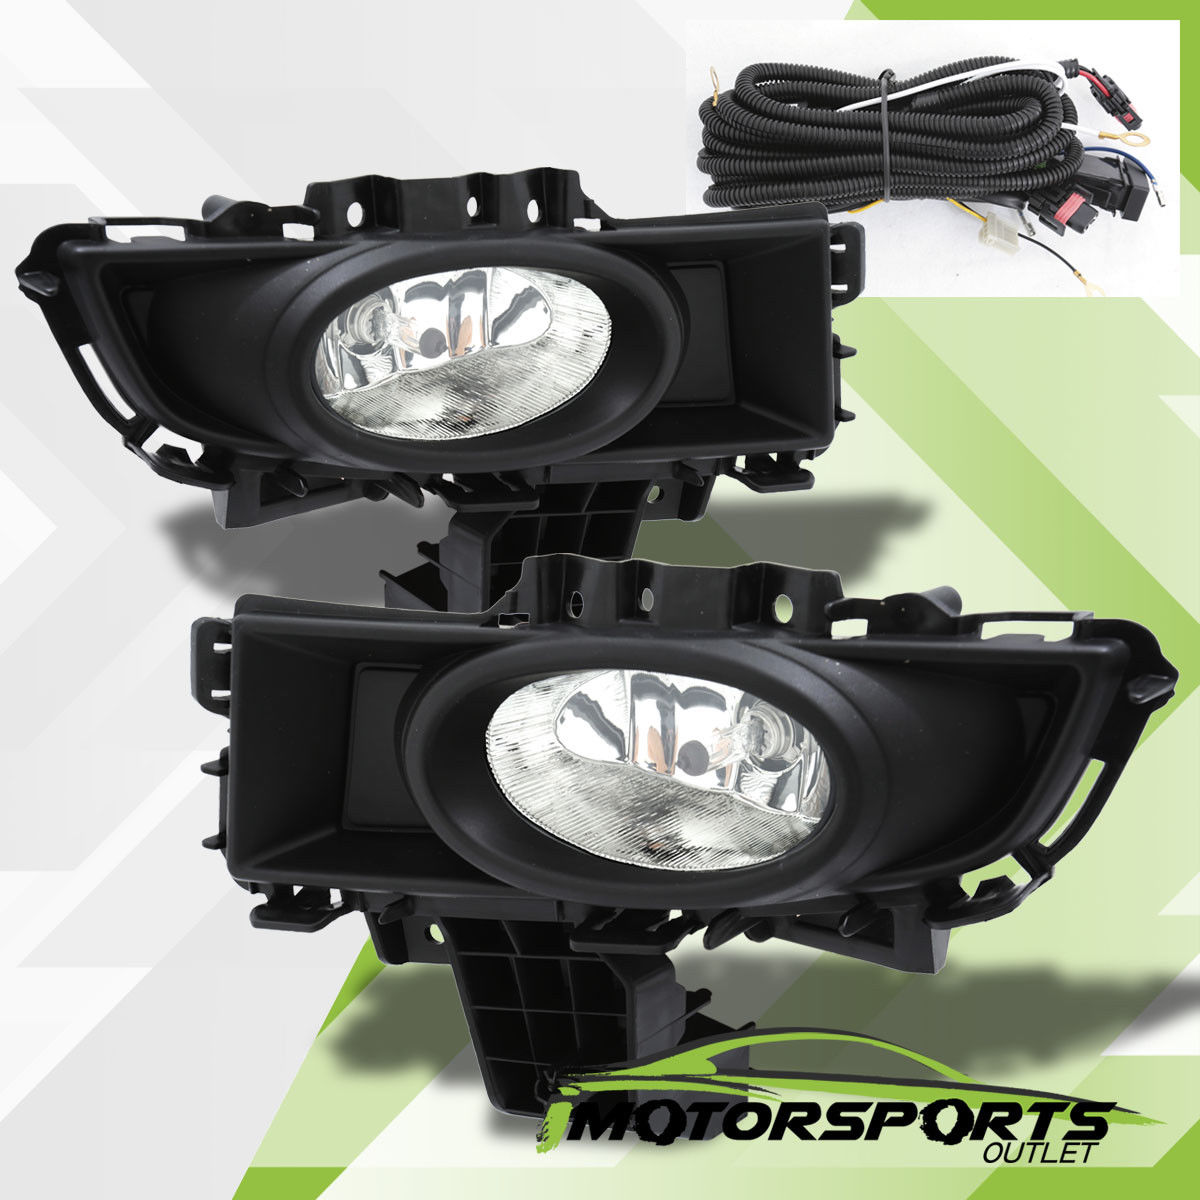 Awesome 2007 2008 2009 Mazda 3 4dr Sedan Bumper Fog Lights Bulbs Wiring A Switch For Kit 2017 2018